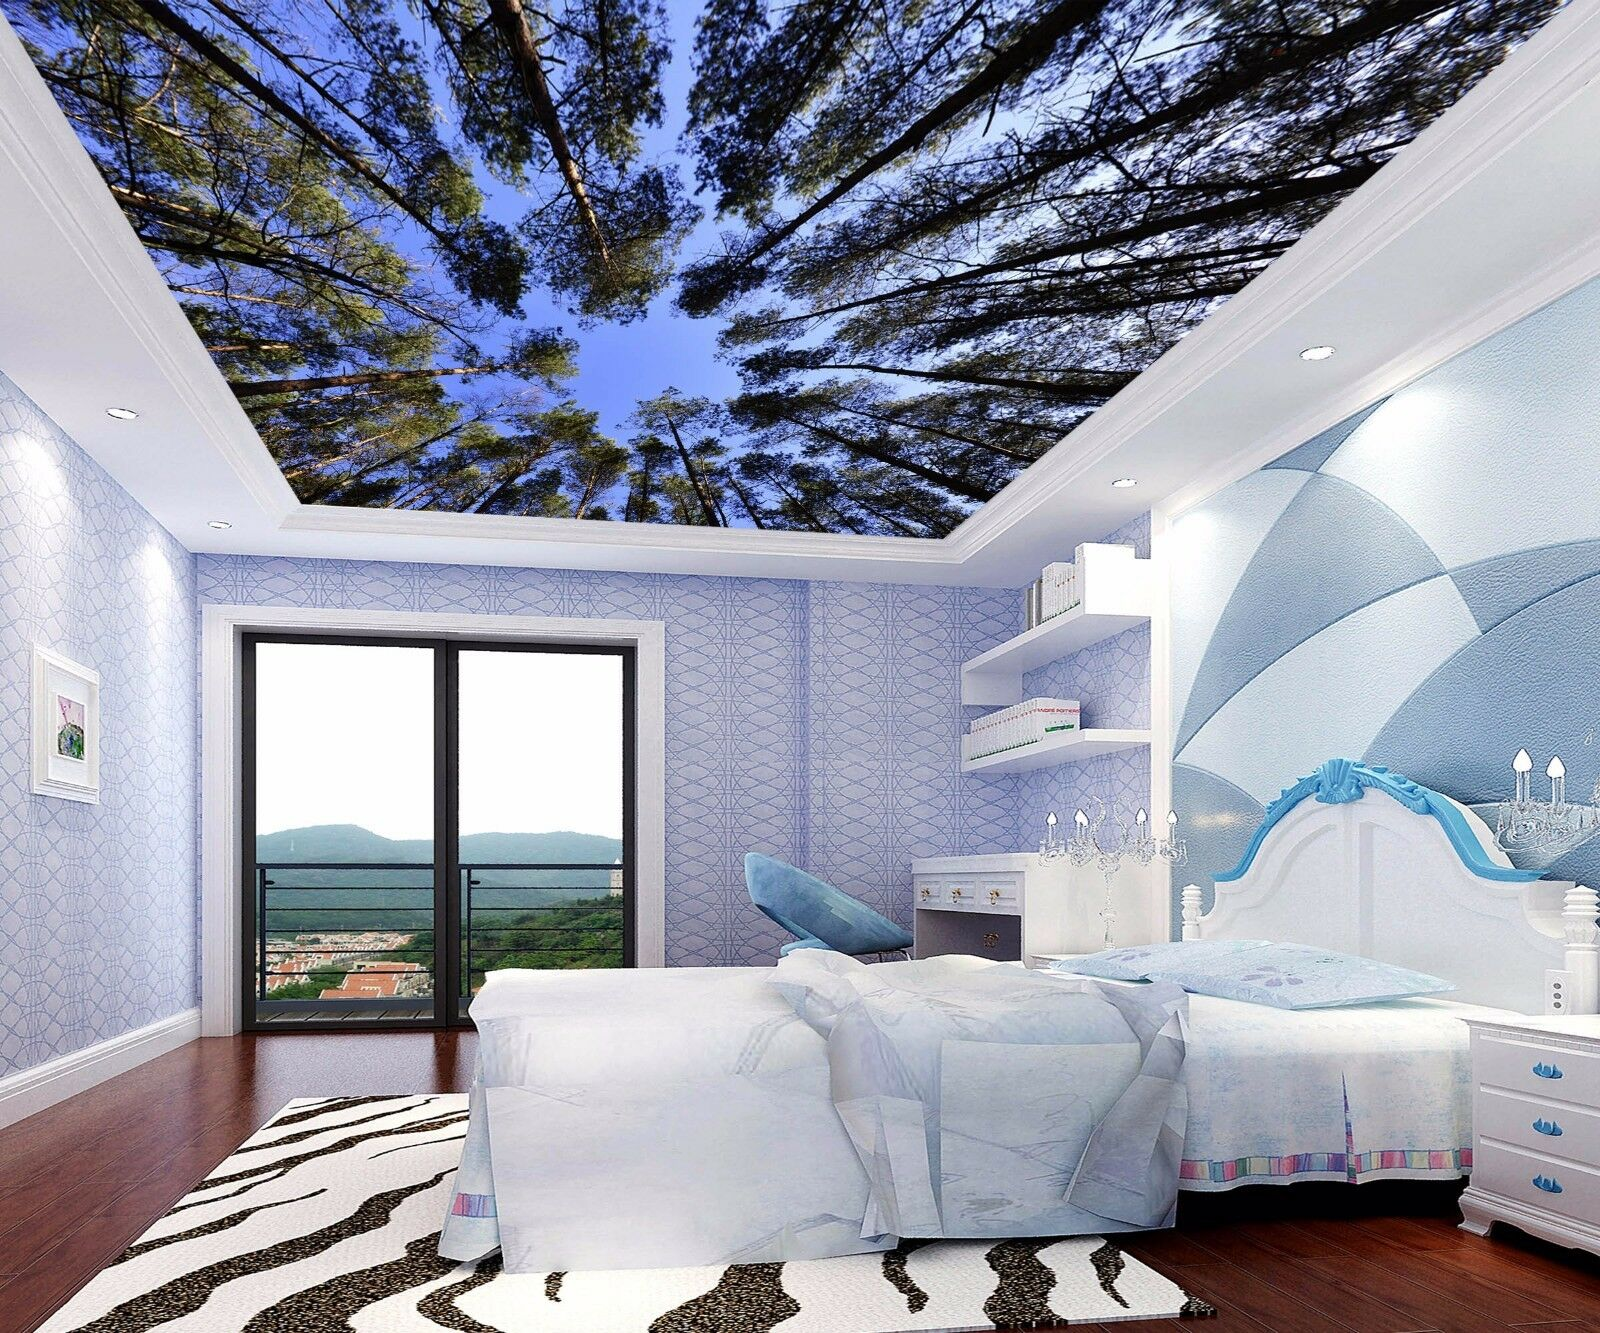 3D Cute Grove 744 Ceiling WallPaper Murals Wall Print Decal Deco AJ WALLPAPER